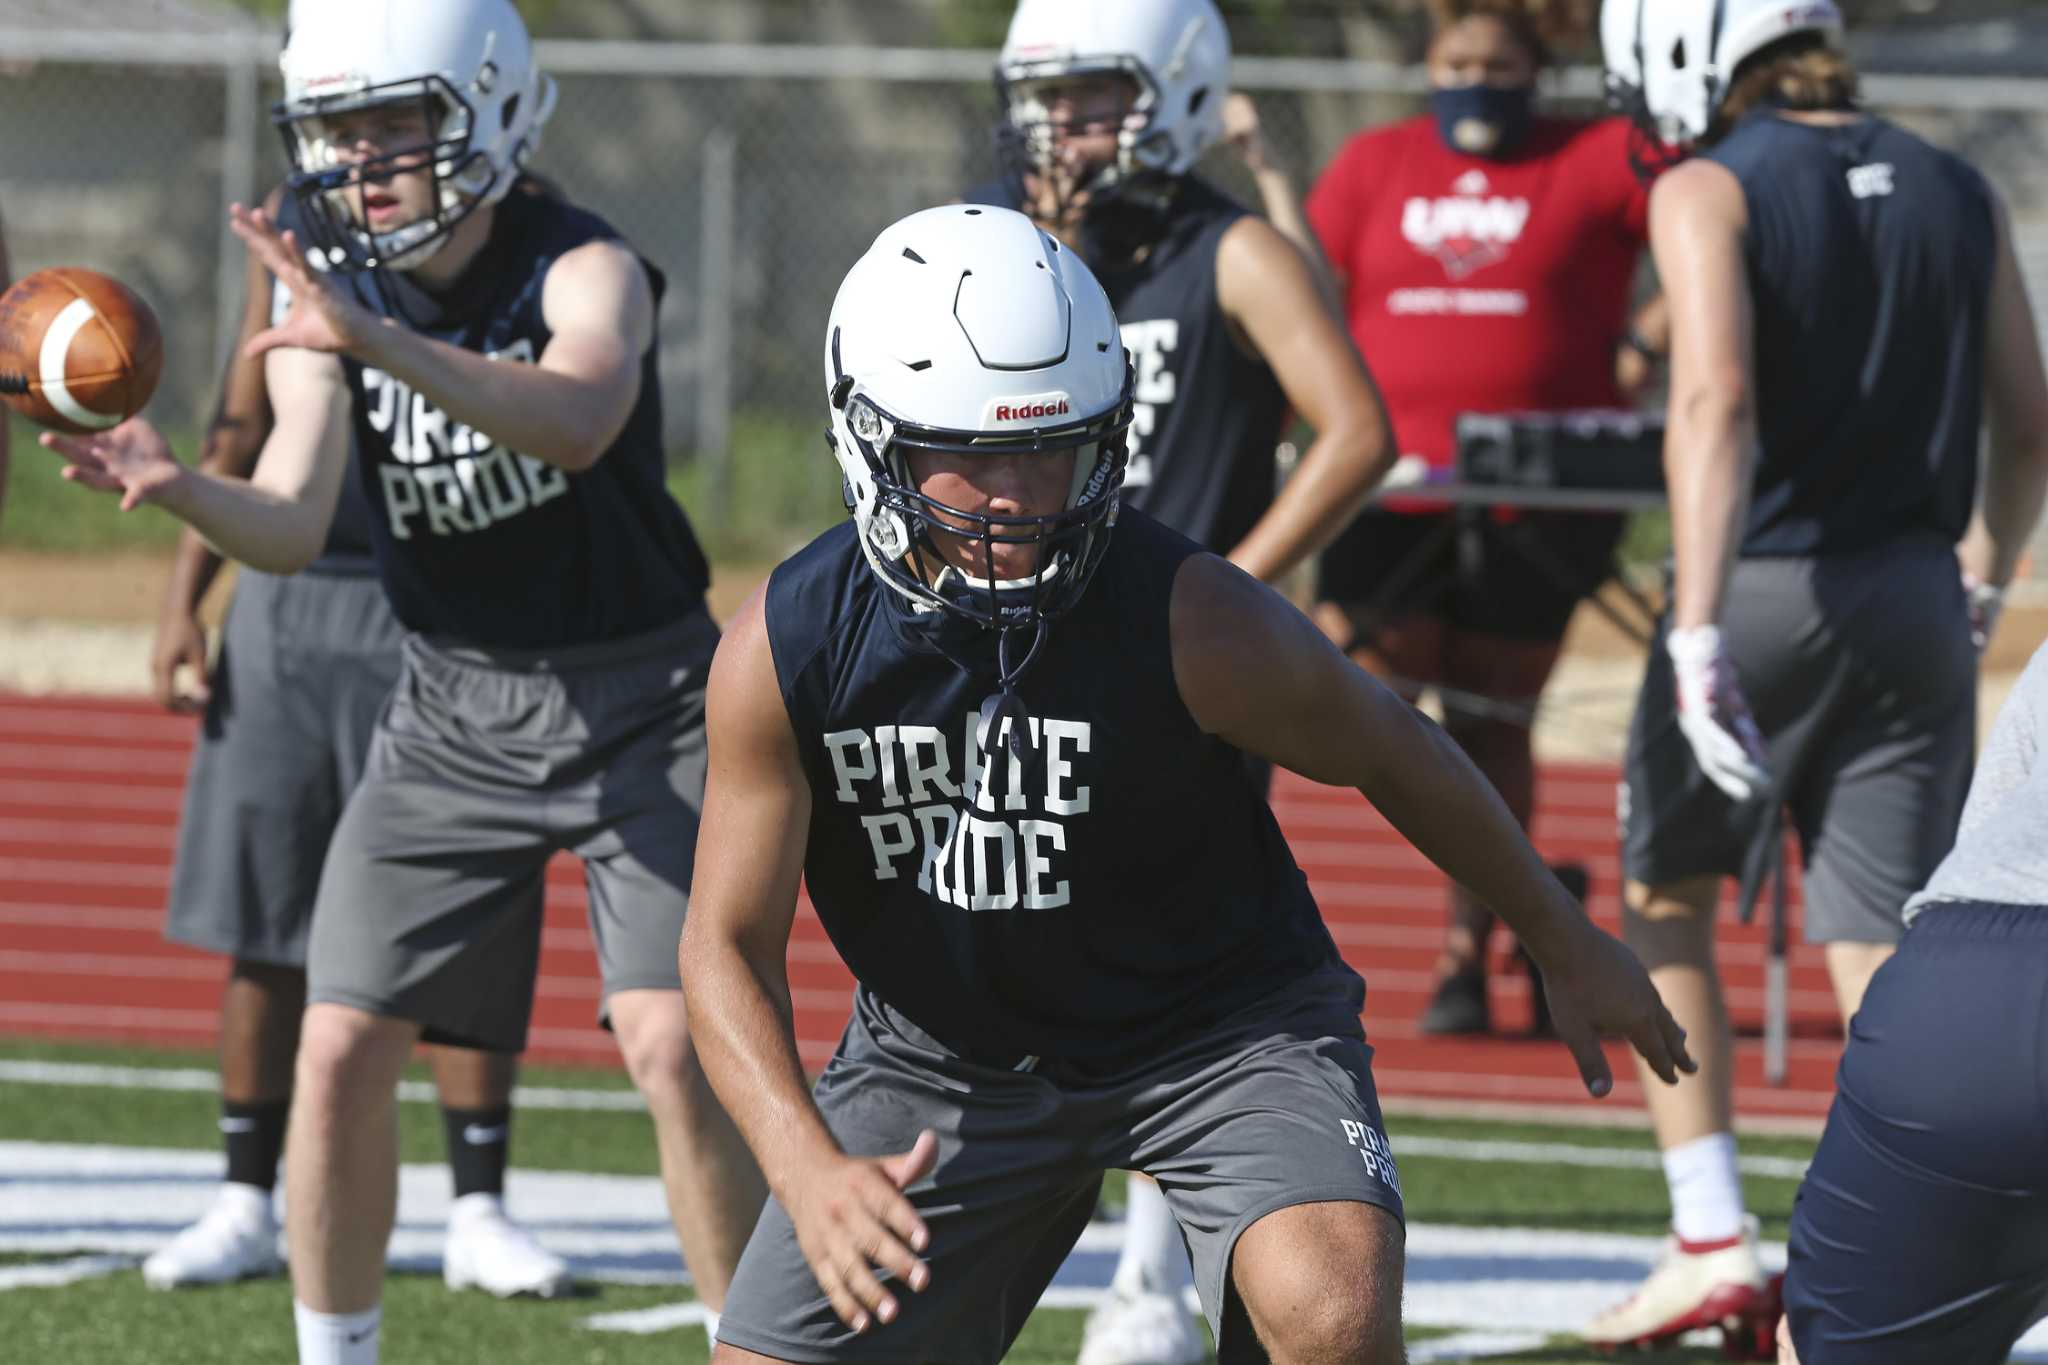 Trevor Fuller runs drills during Poth High School football team's first practice of the season, Monday, Aug. 3, 2020. Monday is the first day football teams in UIL class 4A and 1A can practice in Texas.